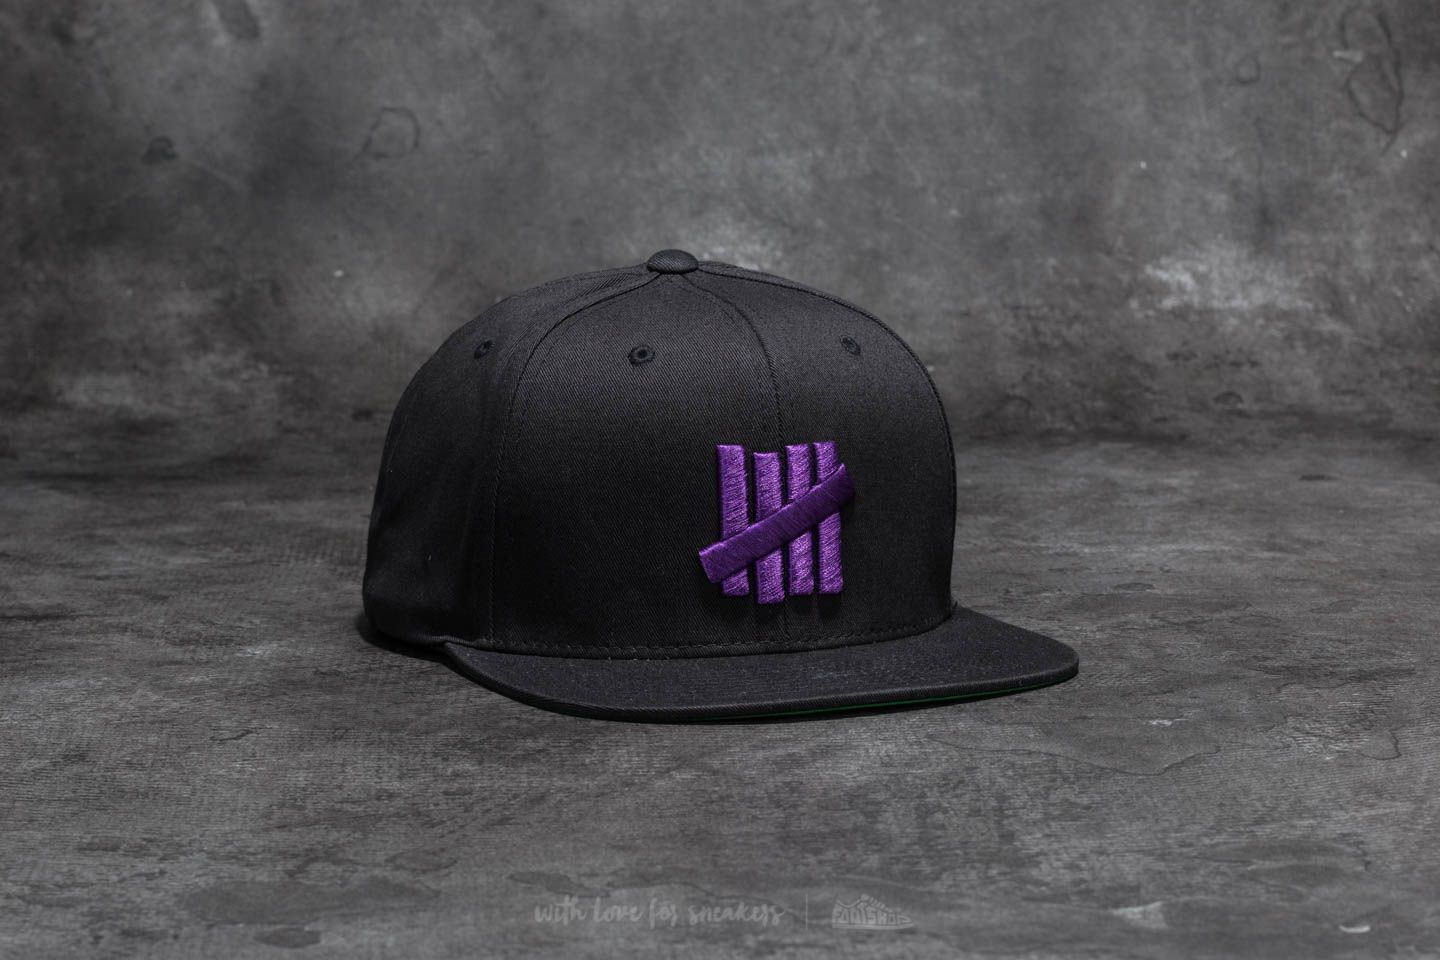 e9d53110c0f02 Undefeated 5 Strike Snapback Black